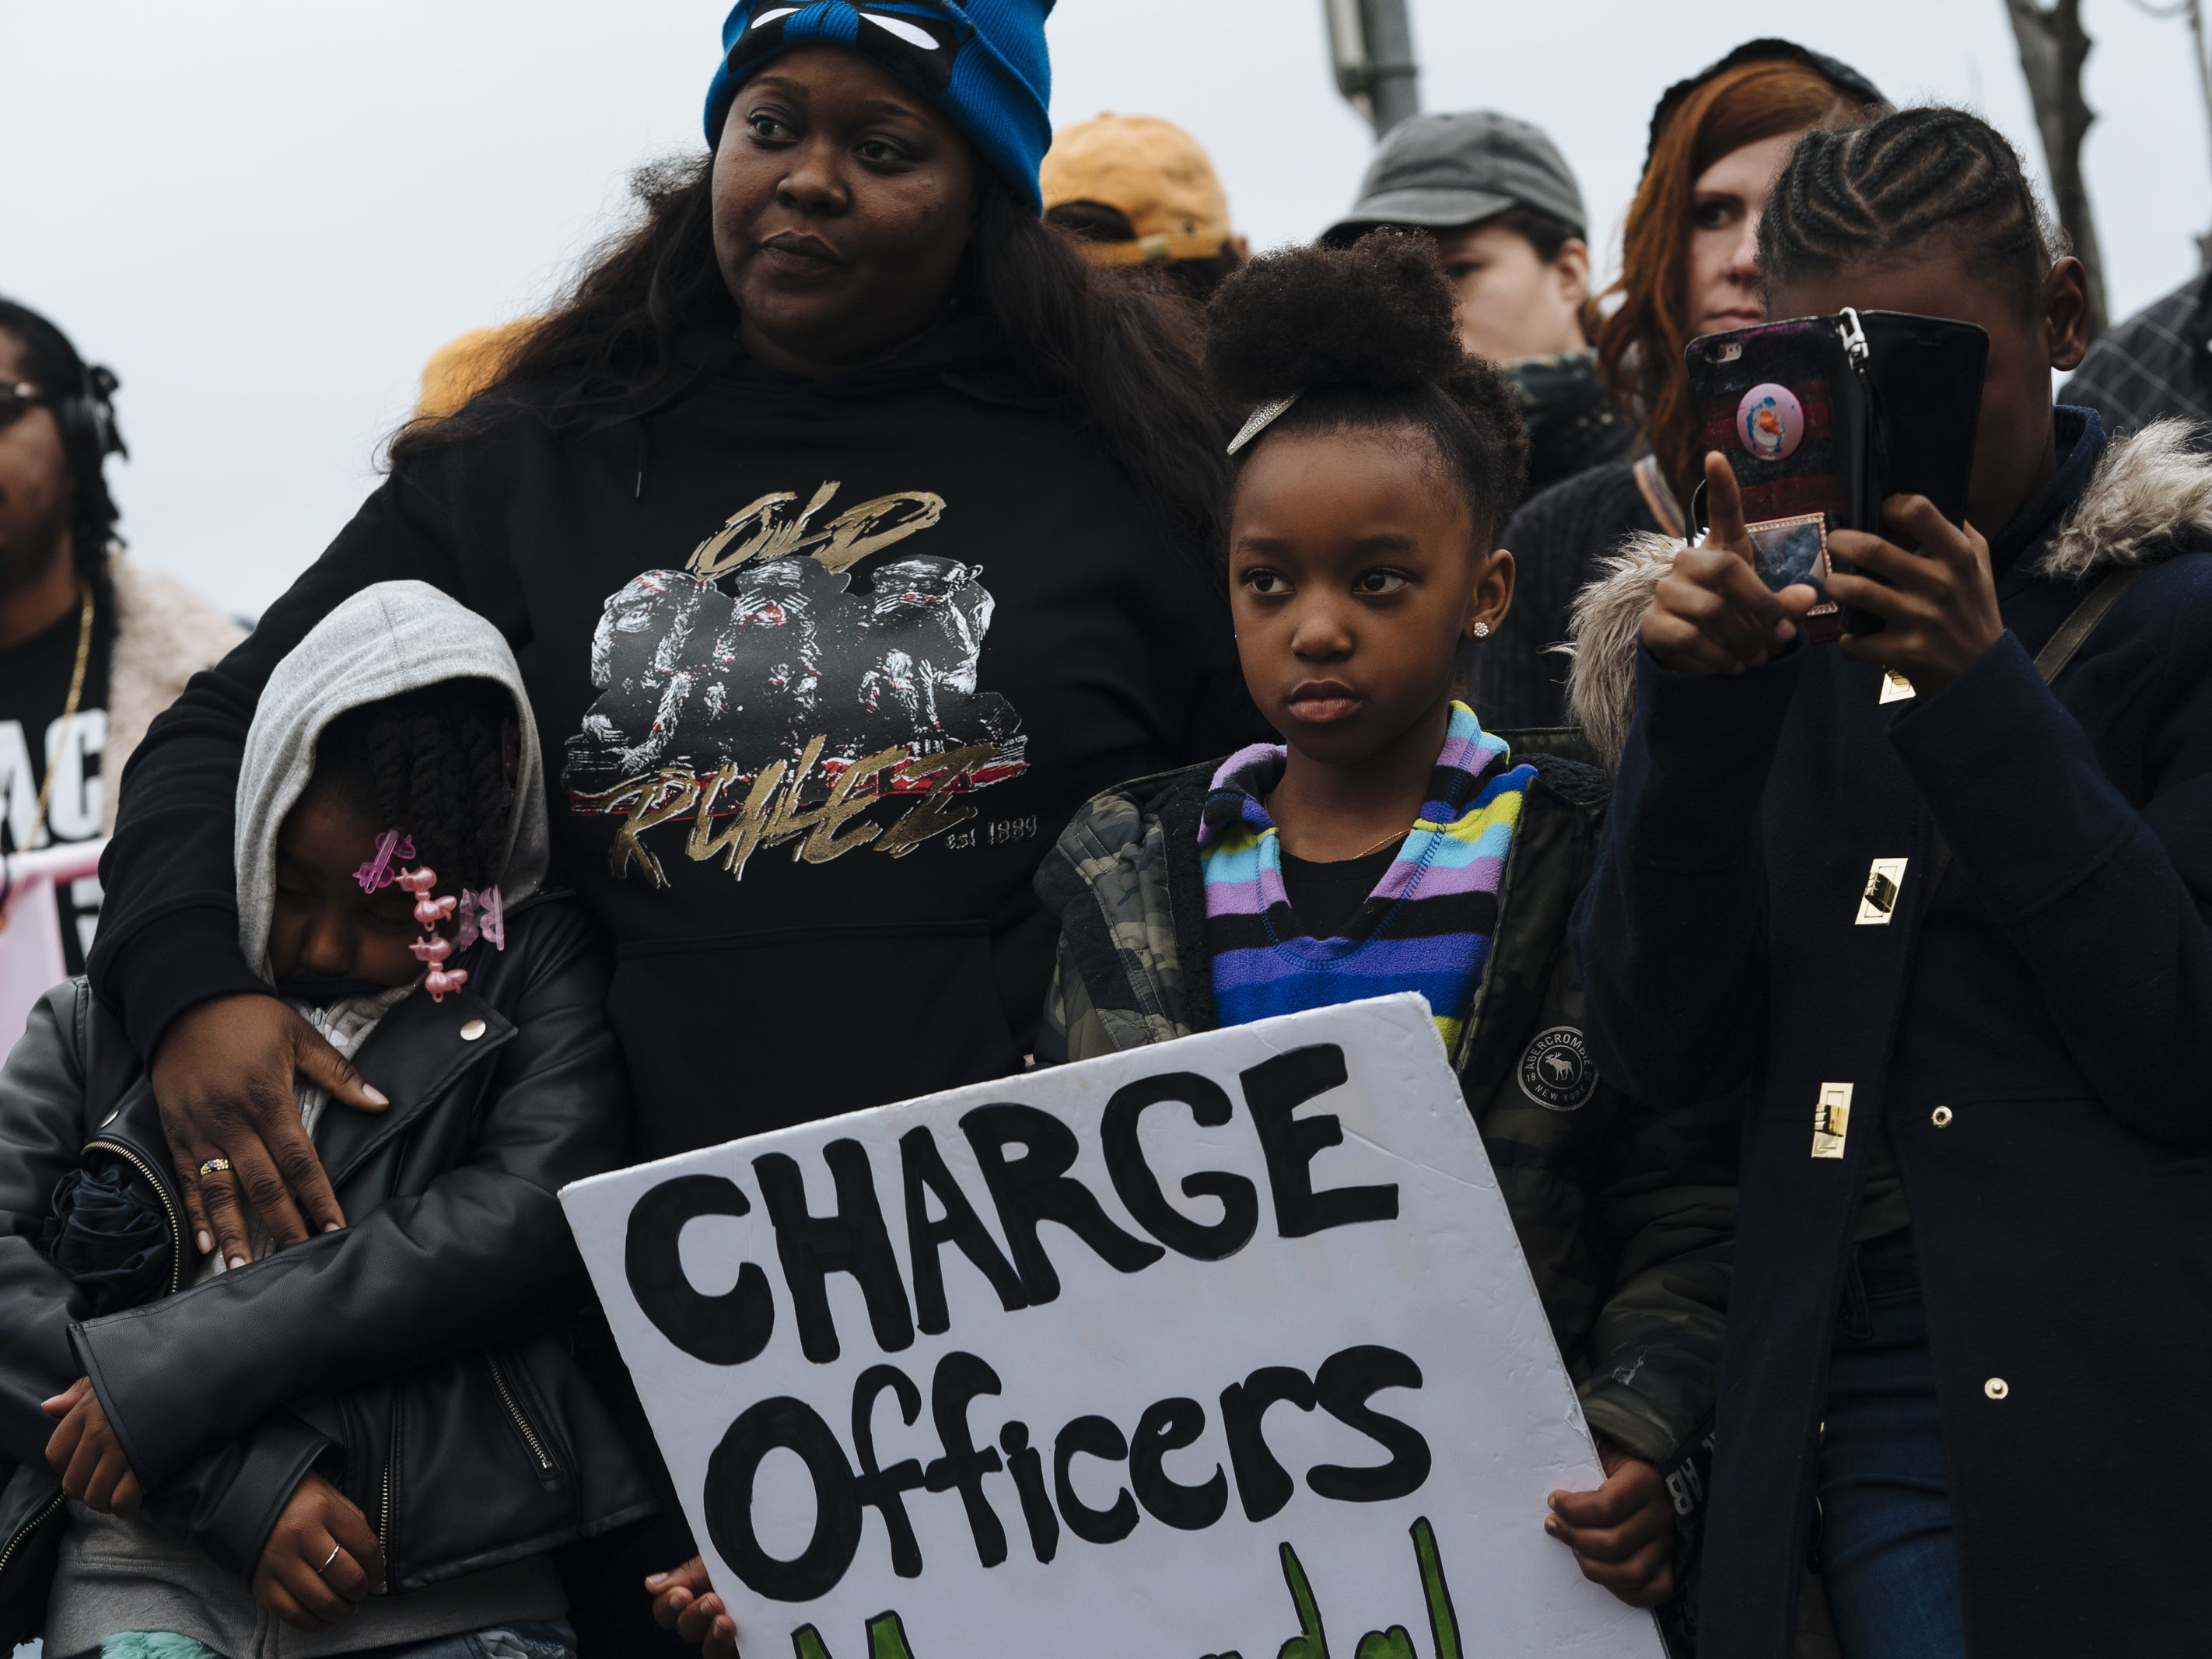 Stephon Clark case exemplifies why communities don't trust cops: Readers sound off